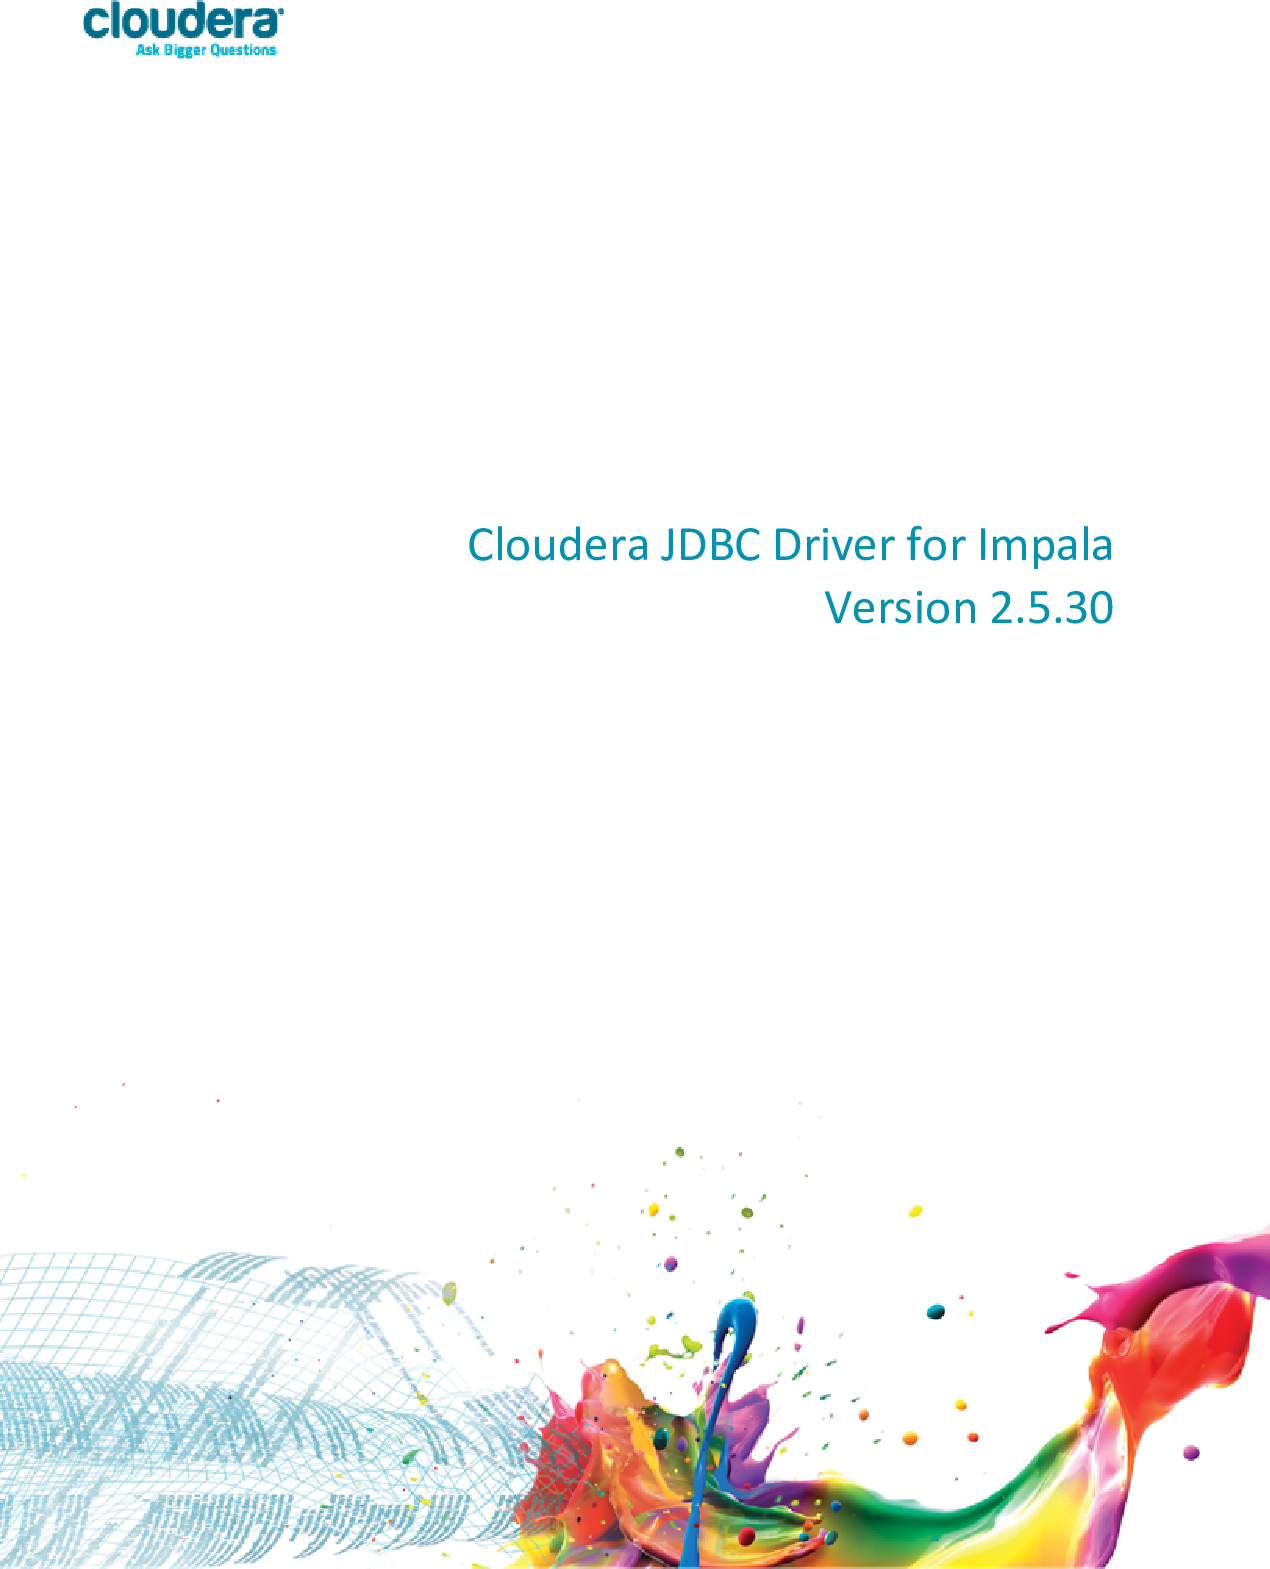 Cloudera JDBC Driver For Impala Installation And